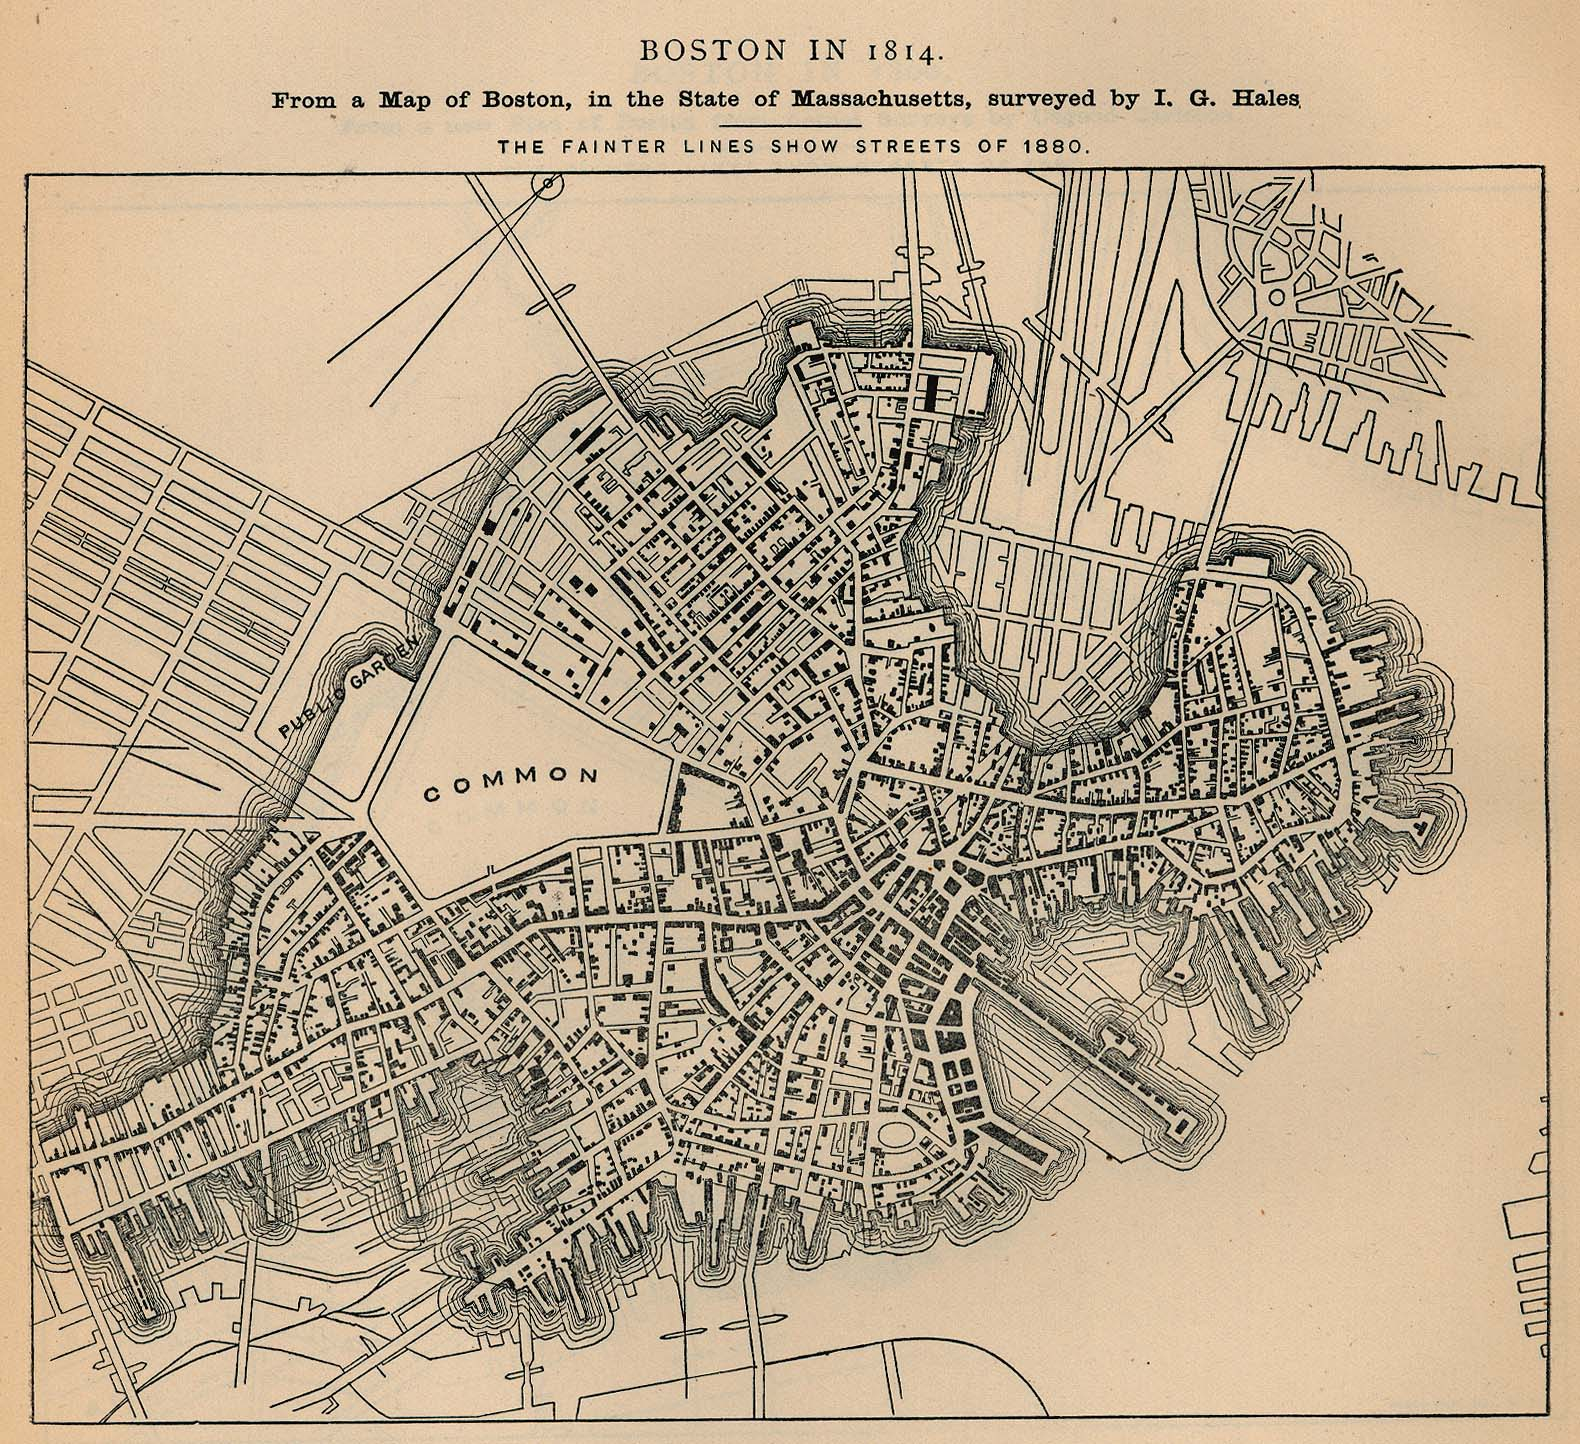 Boston City Map, Massachusetts, United States 1814